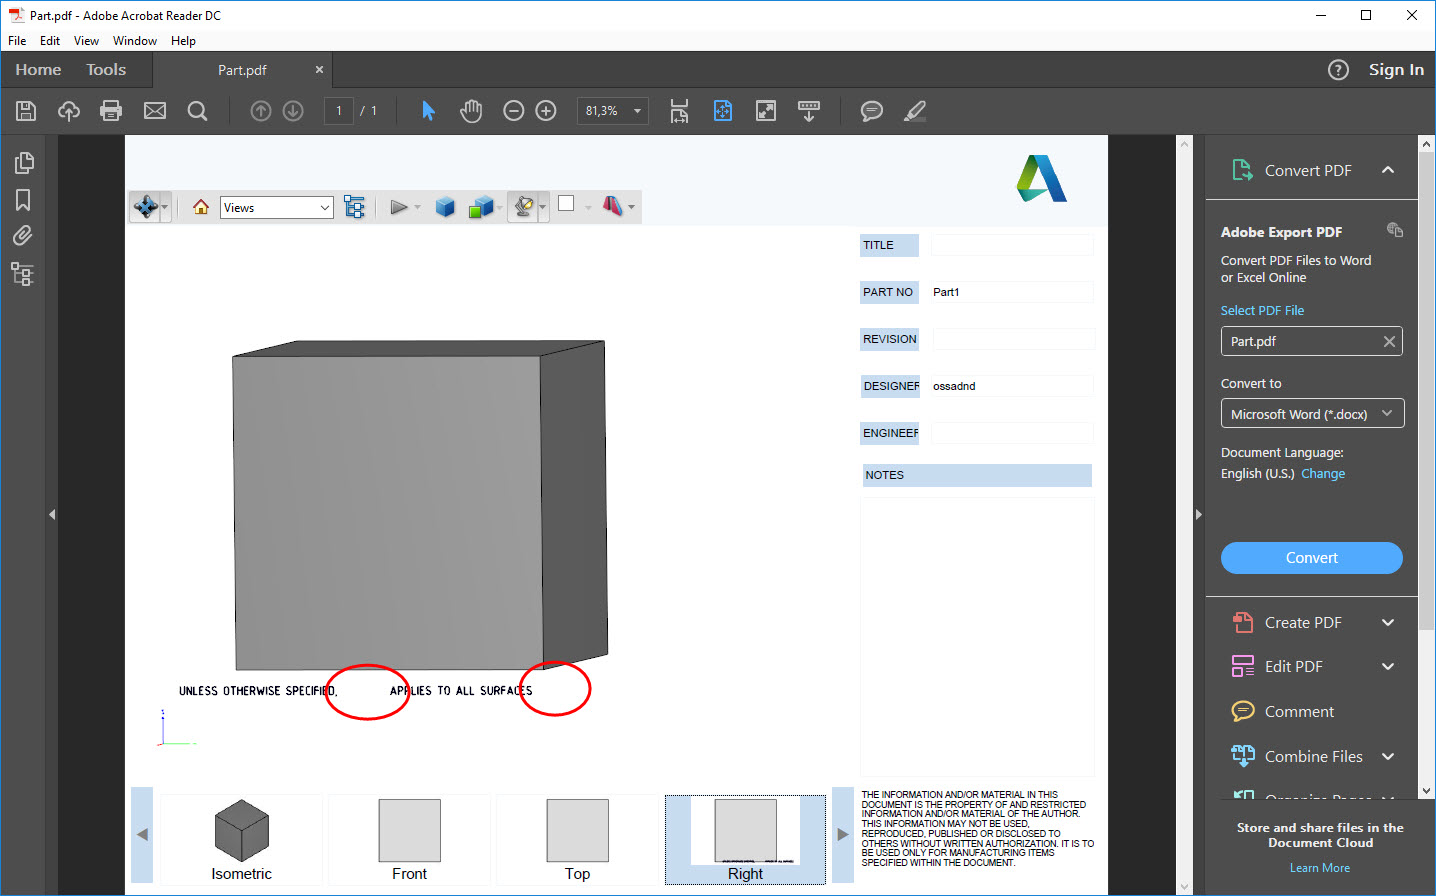 Inventor general note surface texture symbol in mdb is not user added image buycottarizona